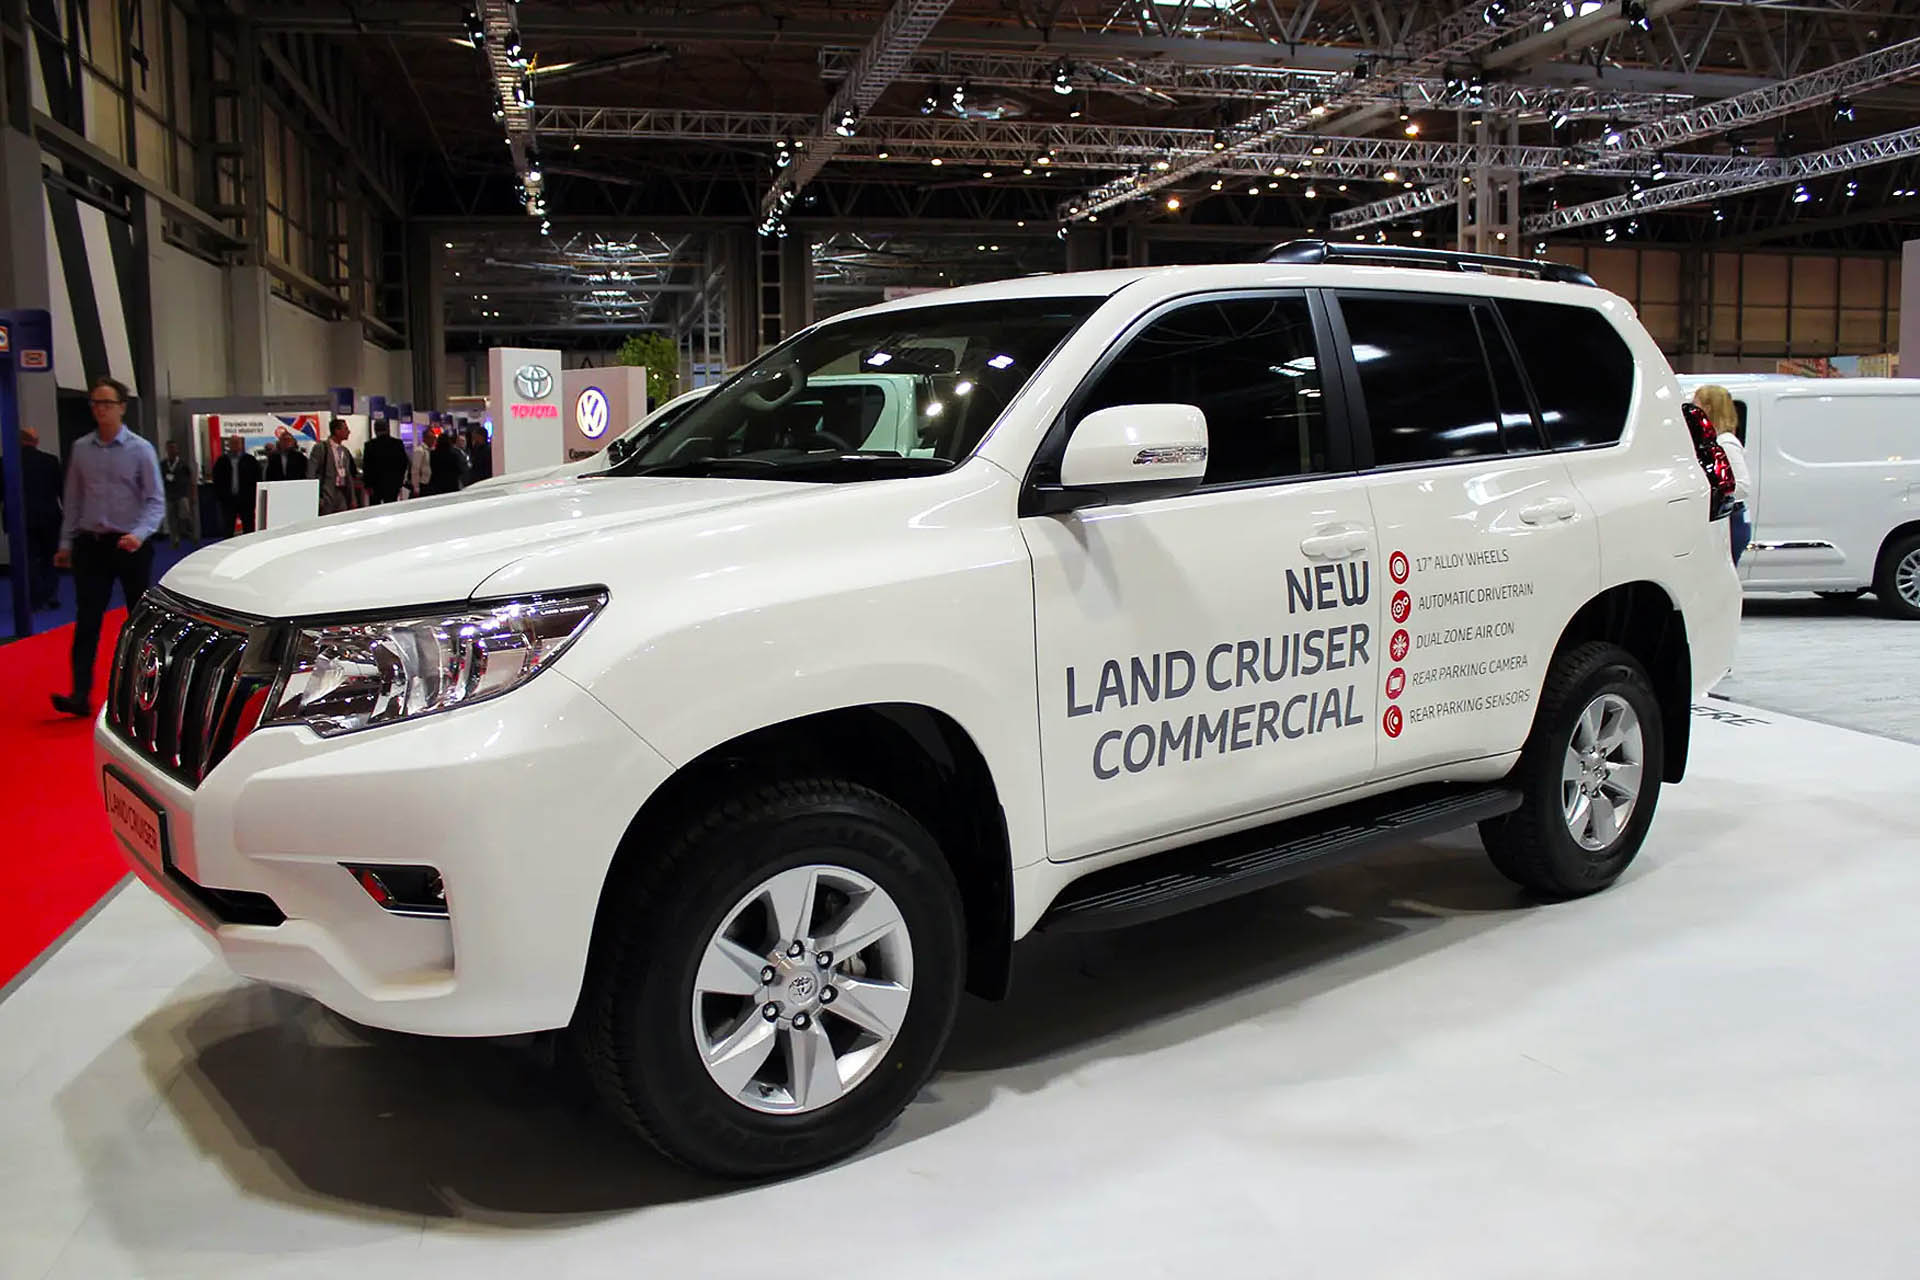 Toyota Land Cruiser Commercial 2020